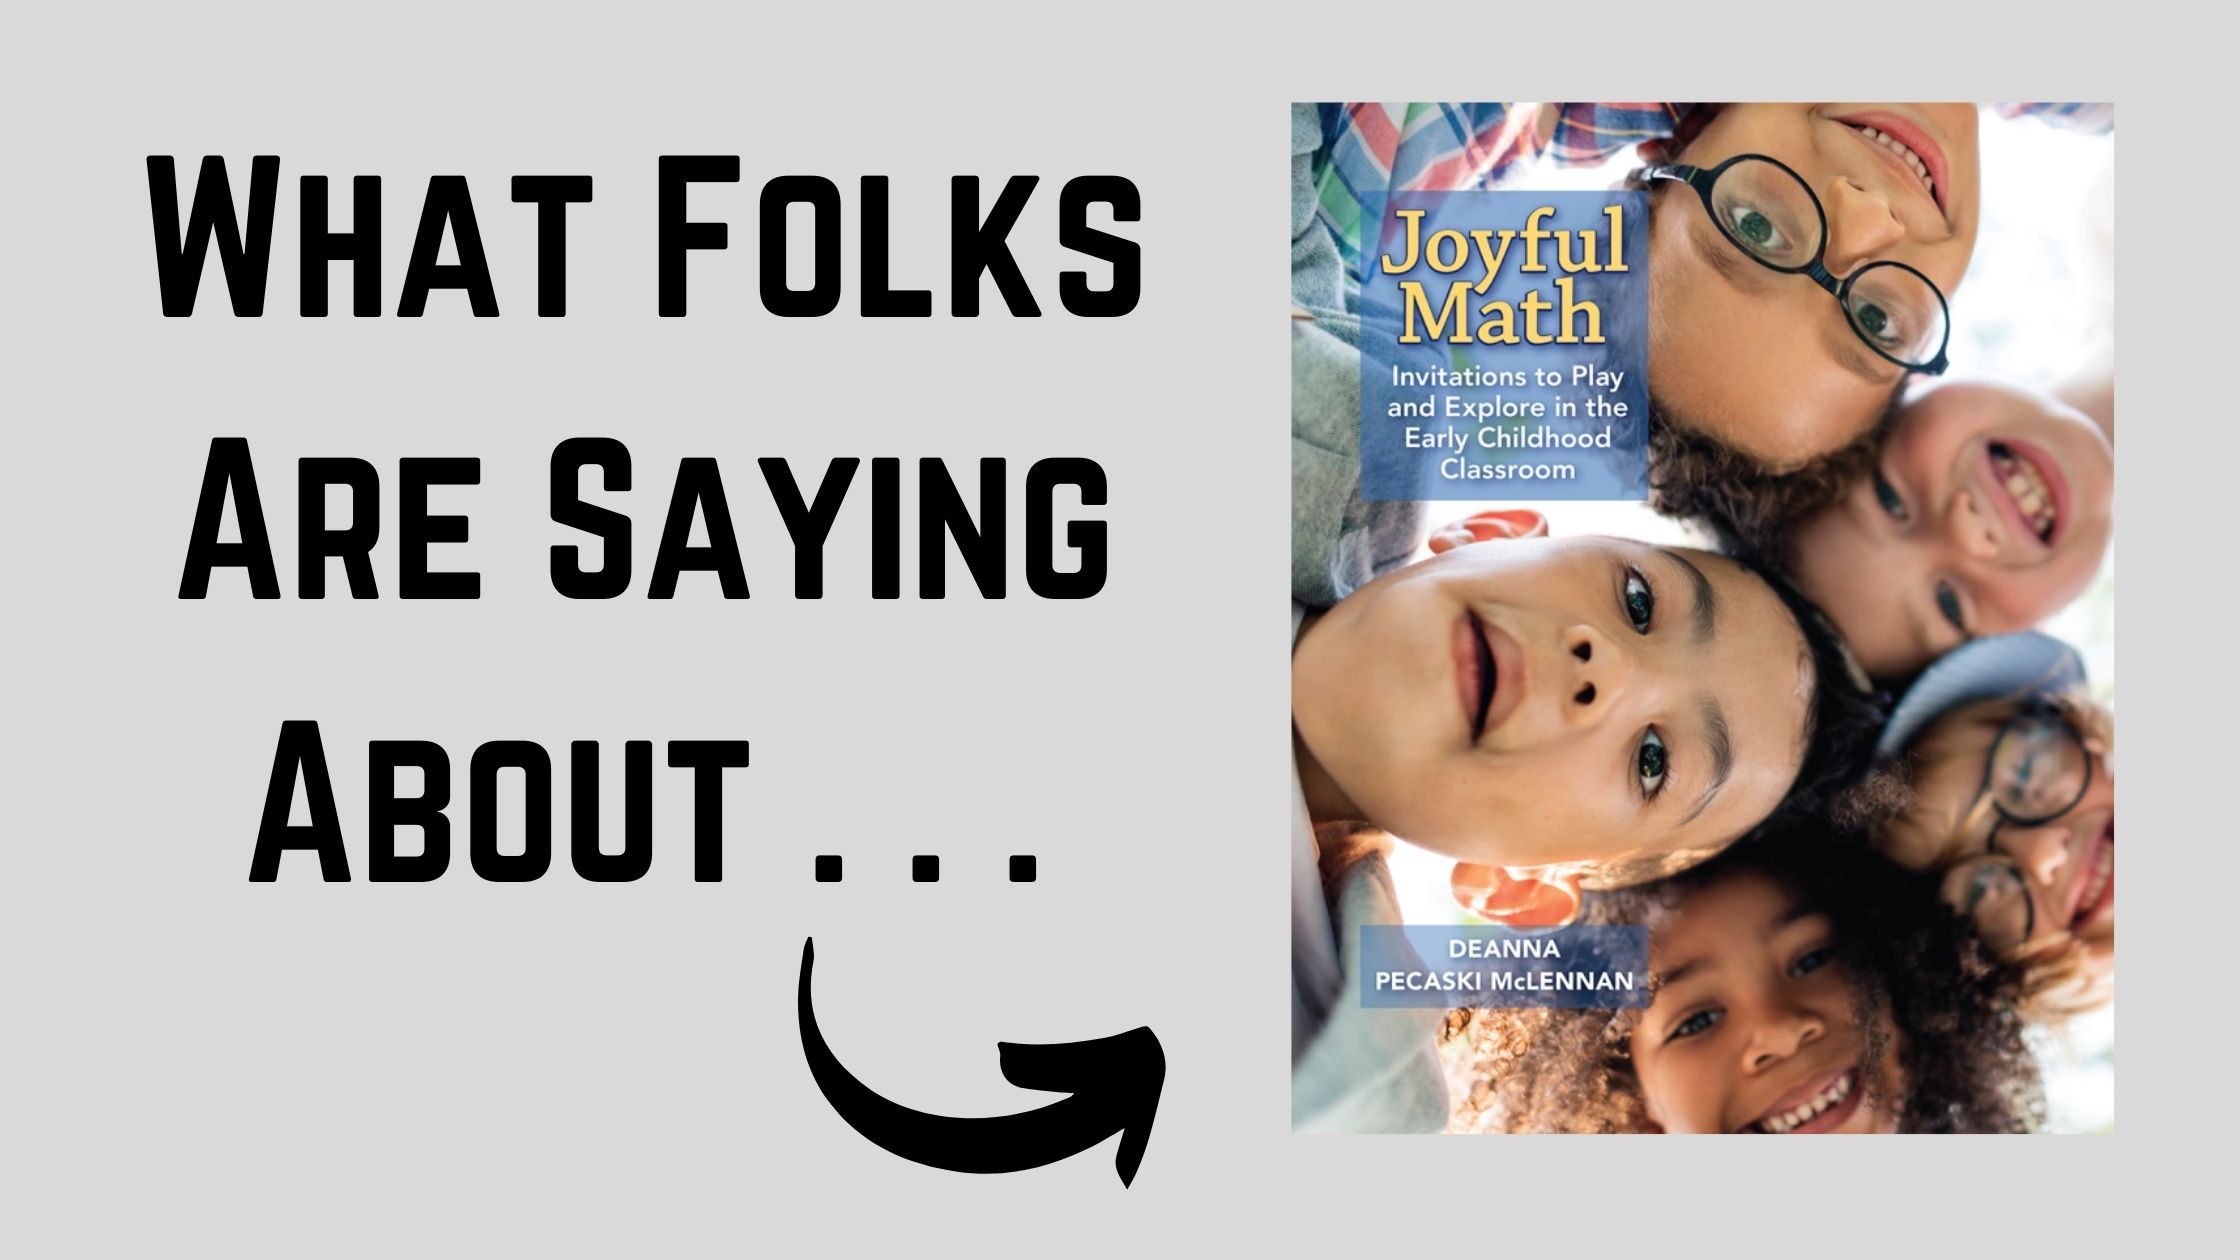 What Folks Are Saying About . . . Joyful Math